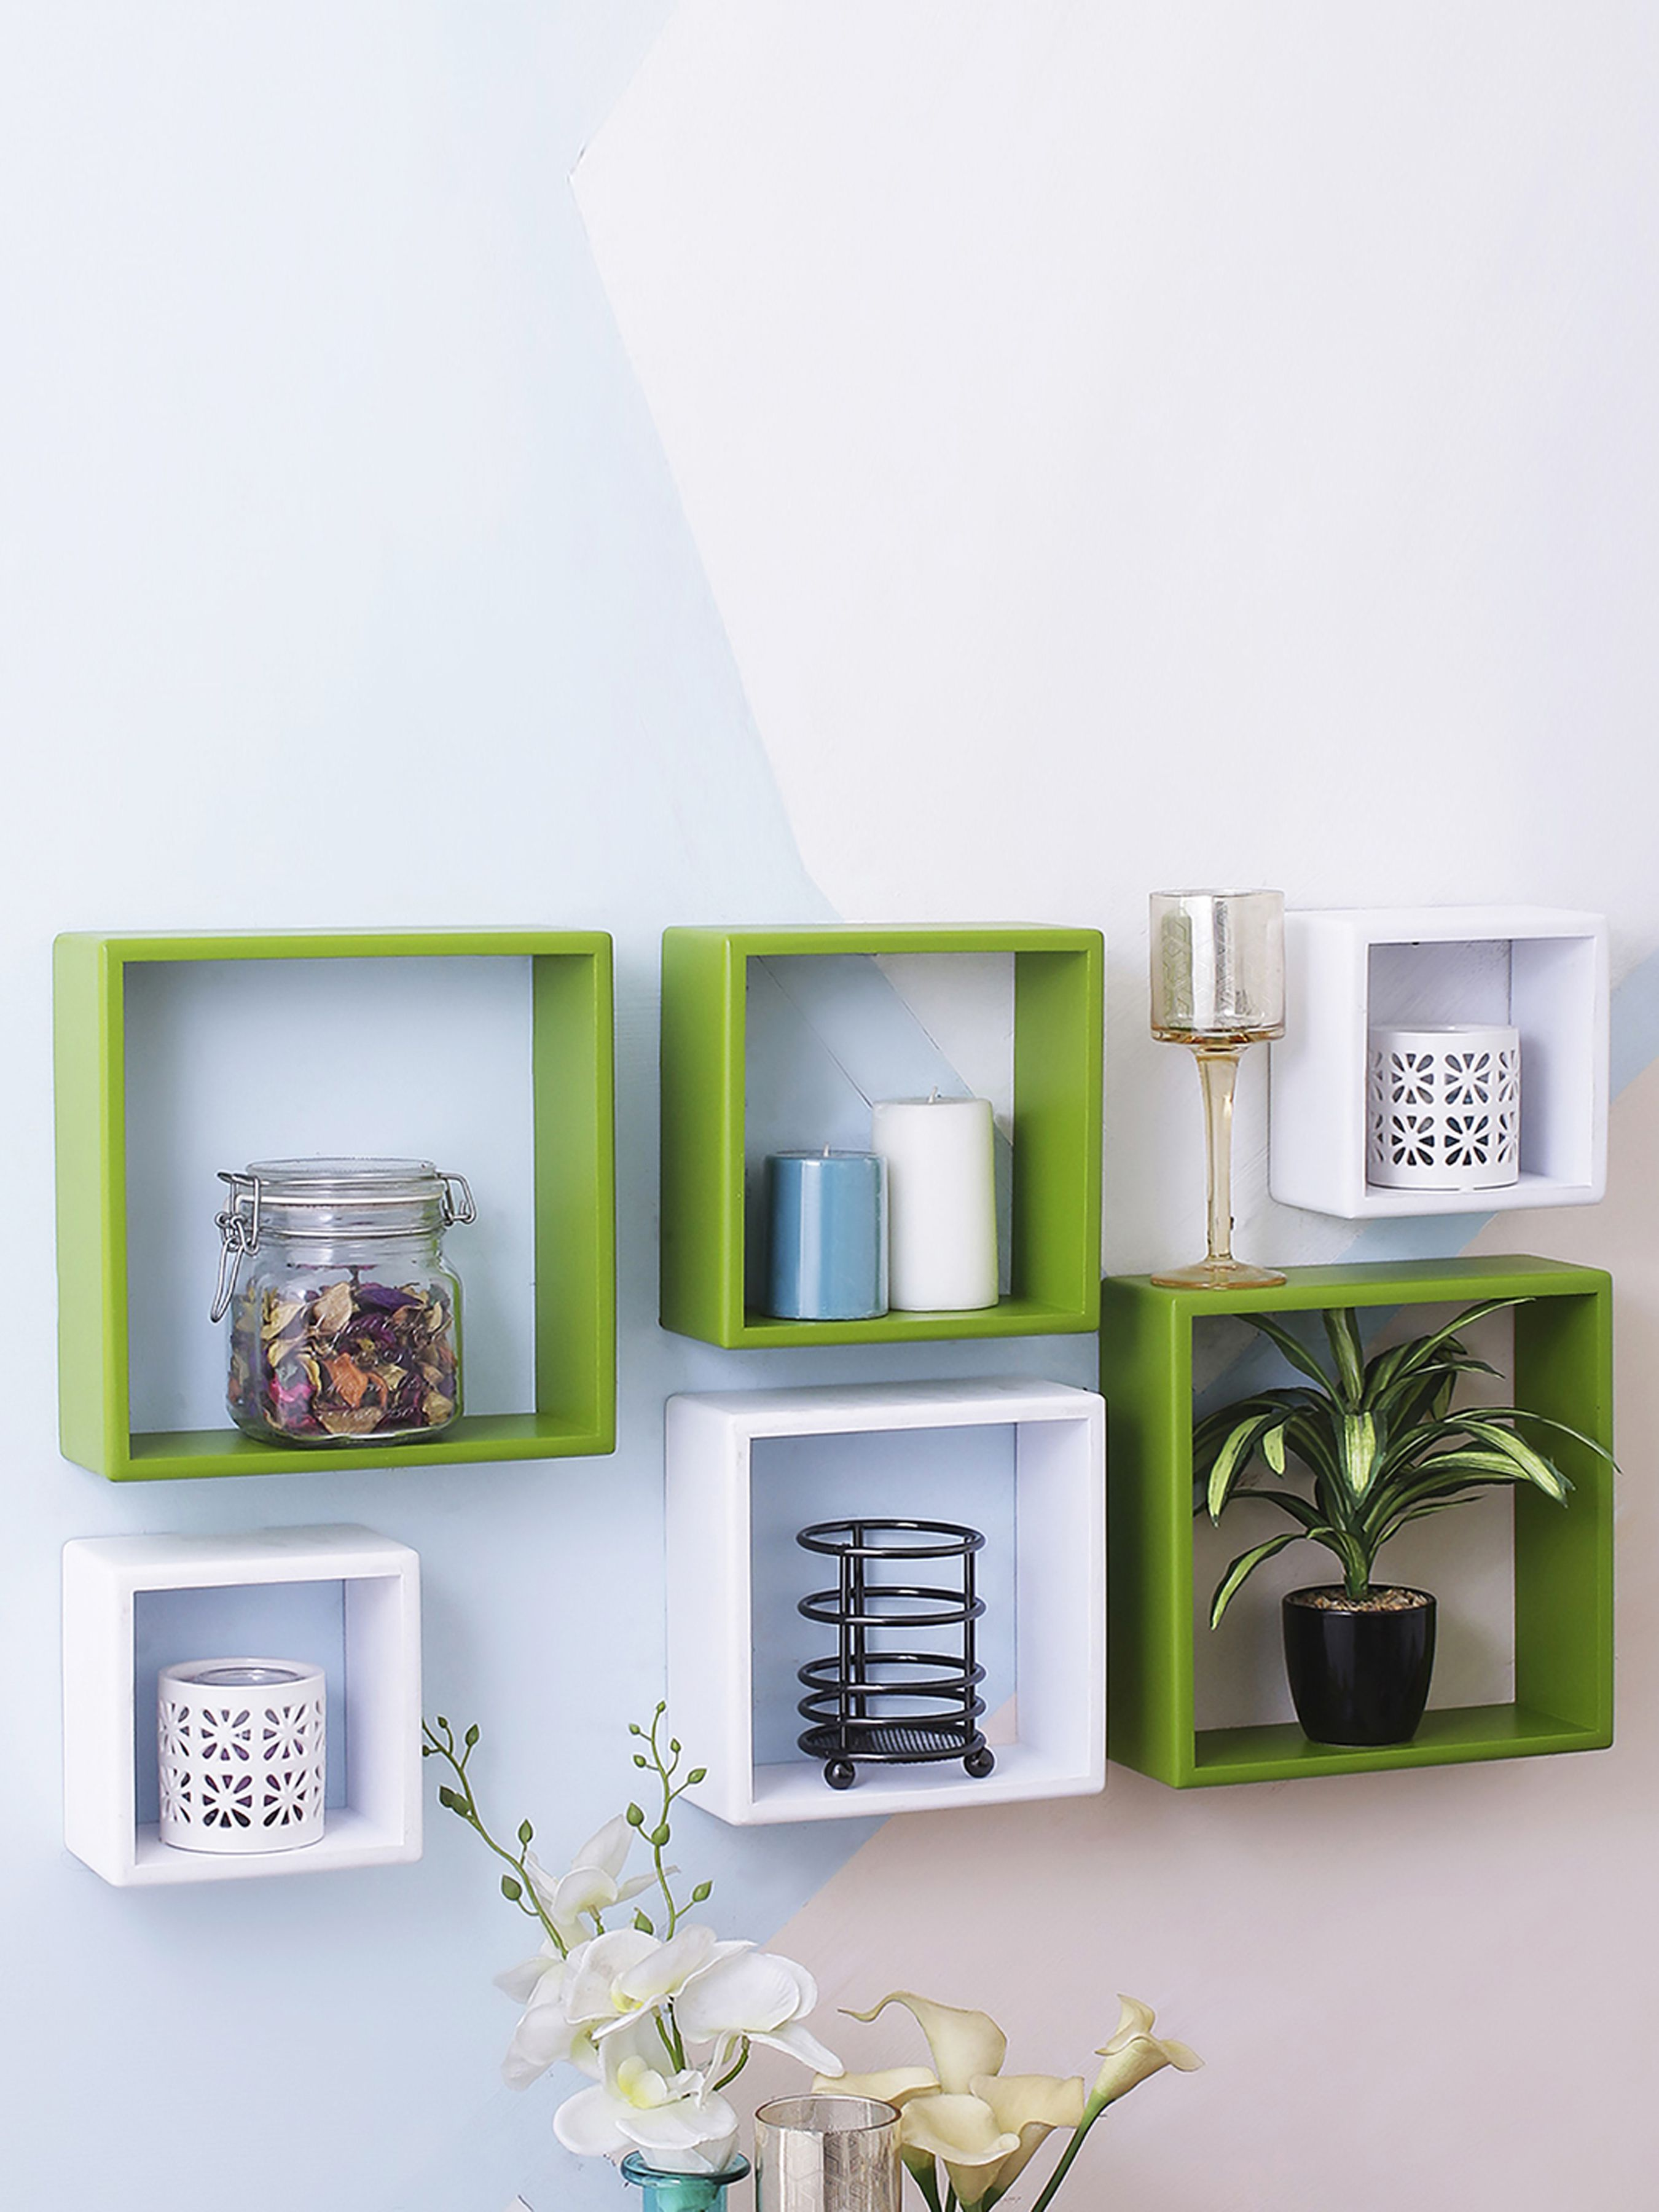 Home Sparkle MDF Set of 6 Square Wall Shelves For Wall Décor -Suitable For Living Room/Bed Room (Designed By Craftsman)